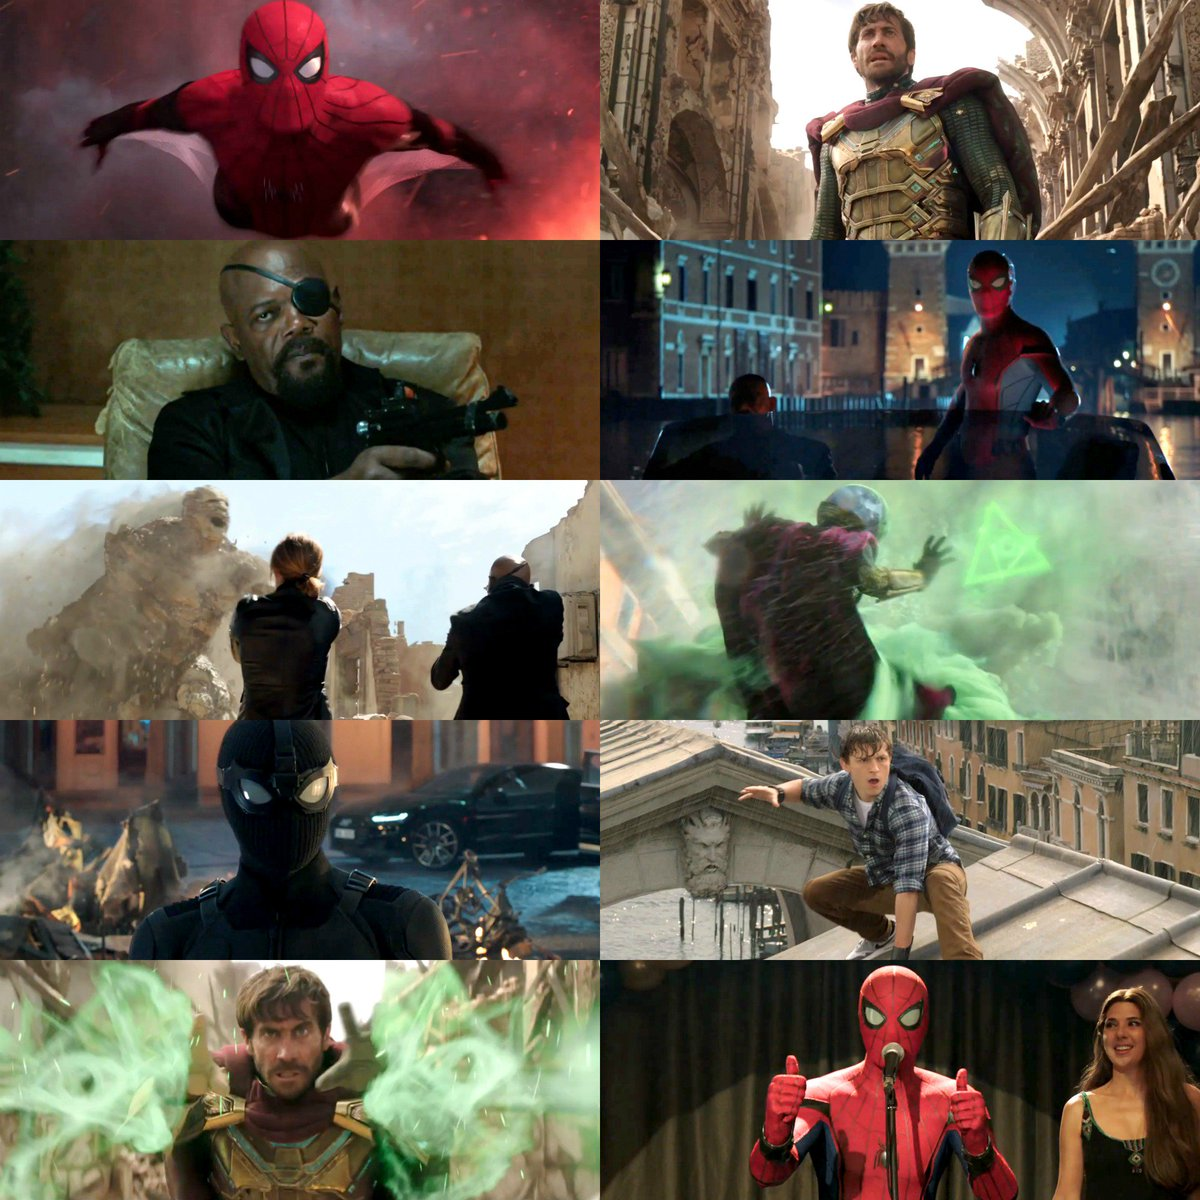 Spider-Man, Mysterio, and Nick Fury unite in the new trailer for #SpiderManFarFromHome